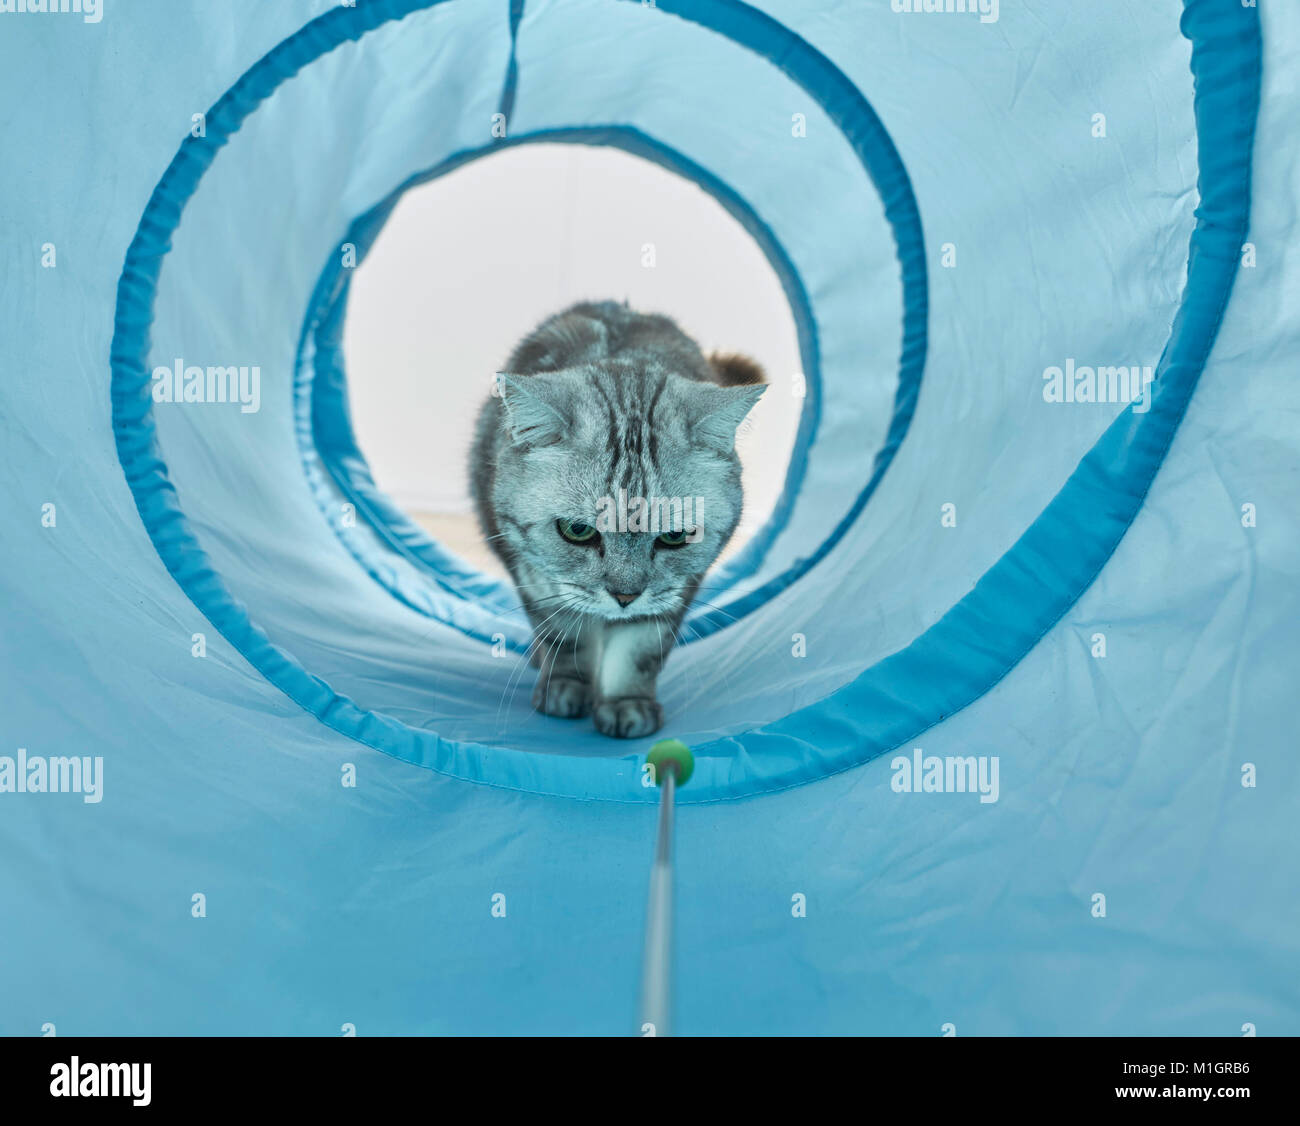 British Shorthair. Adultes tabby gris bleu à travers un waling toy tunnel. Allemagne Photo Stock